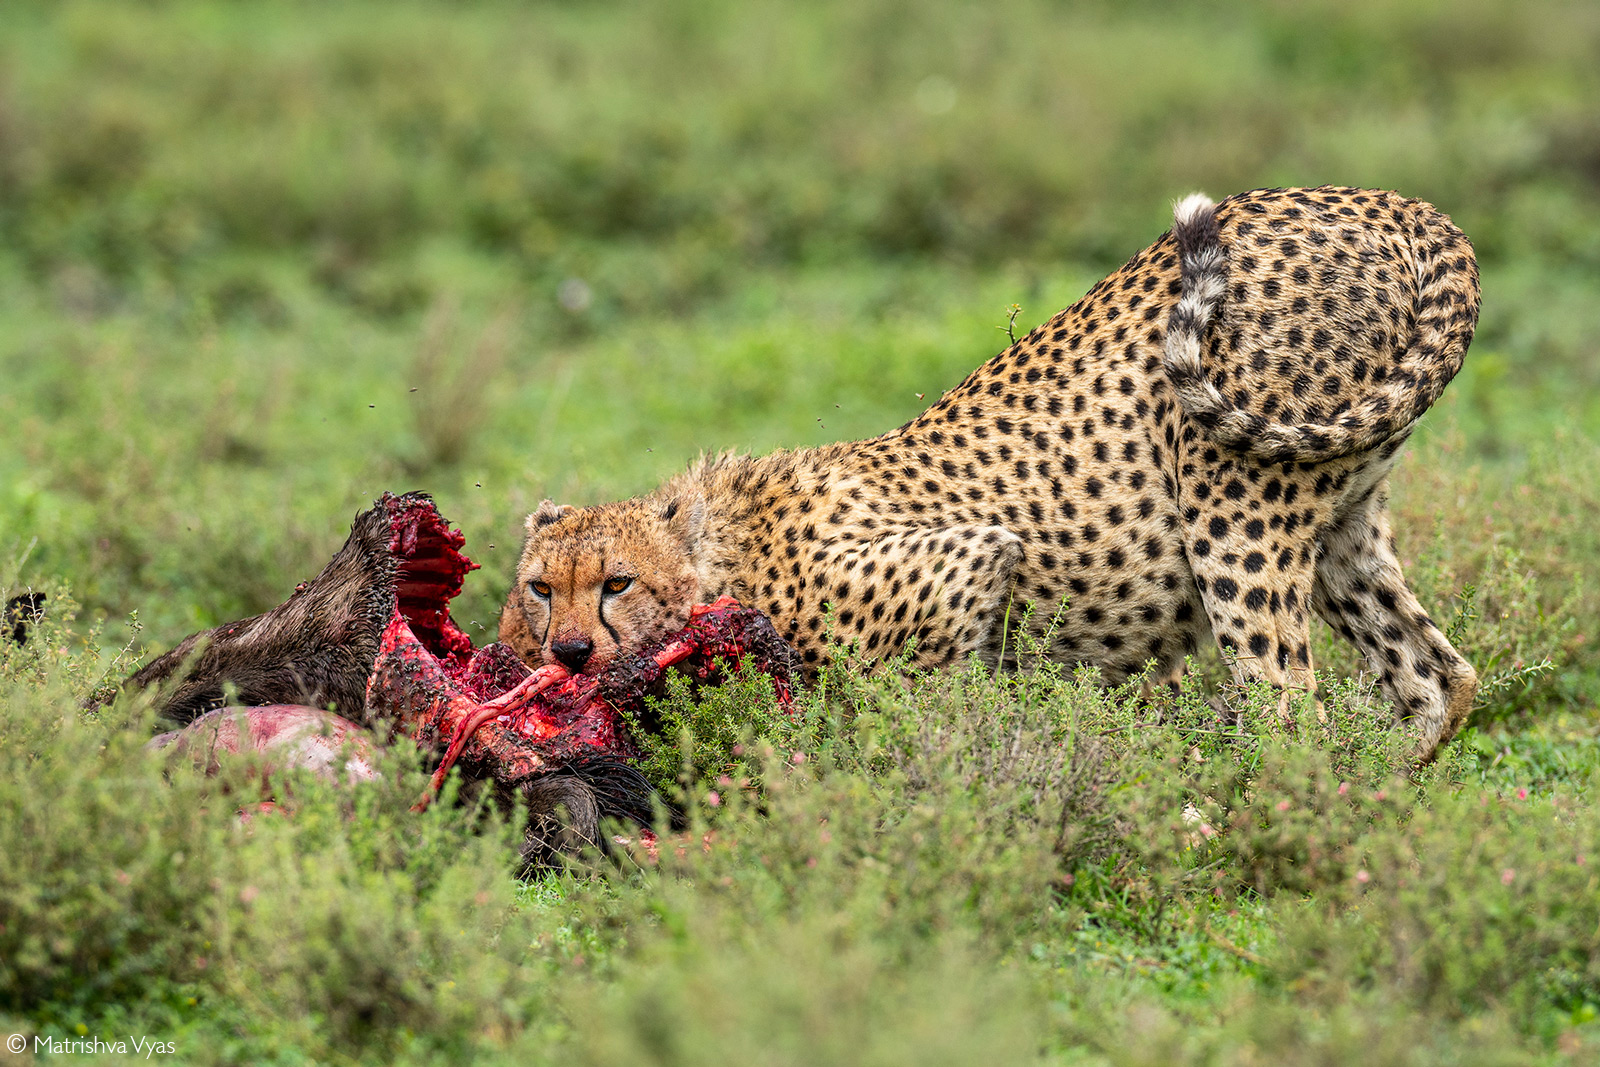 Cheetah feasting on a wildebeest kill. Ndutu, Ngorongoro Conservation Area, Tanzania© Matrishva Vyas